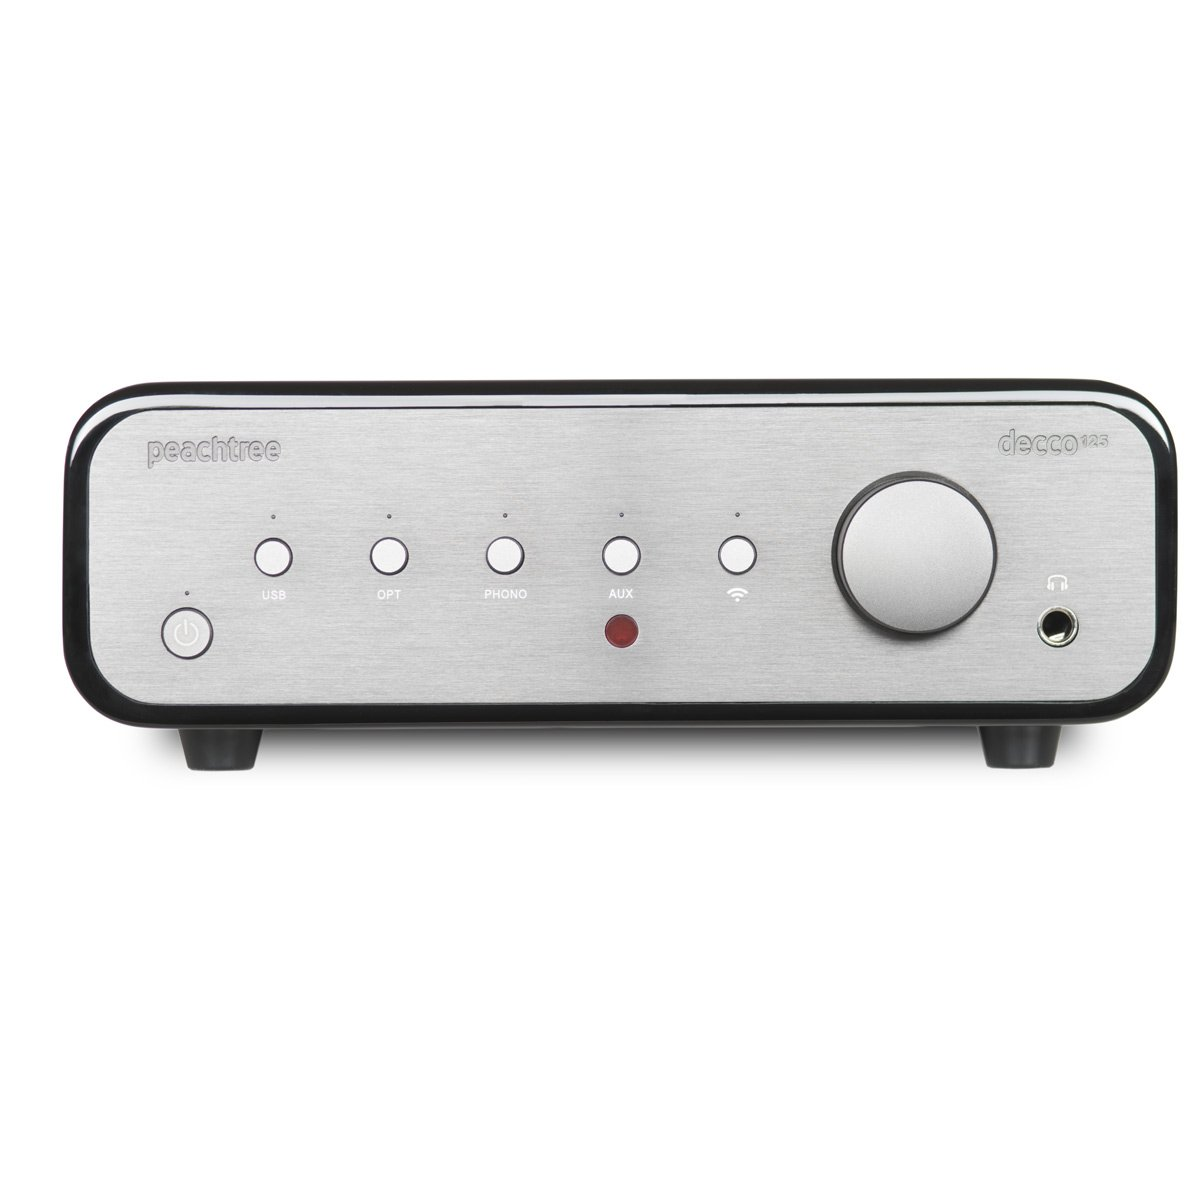 Peachtree Audio decco125 SKY Integrated Amplifier with Wireless Network Input Capability (Piano Black)